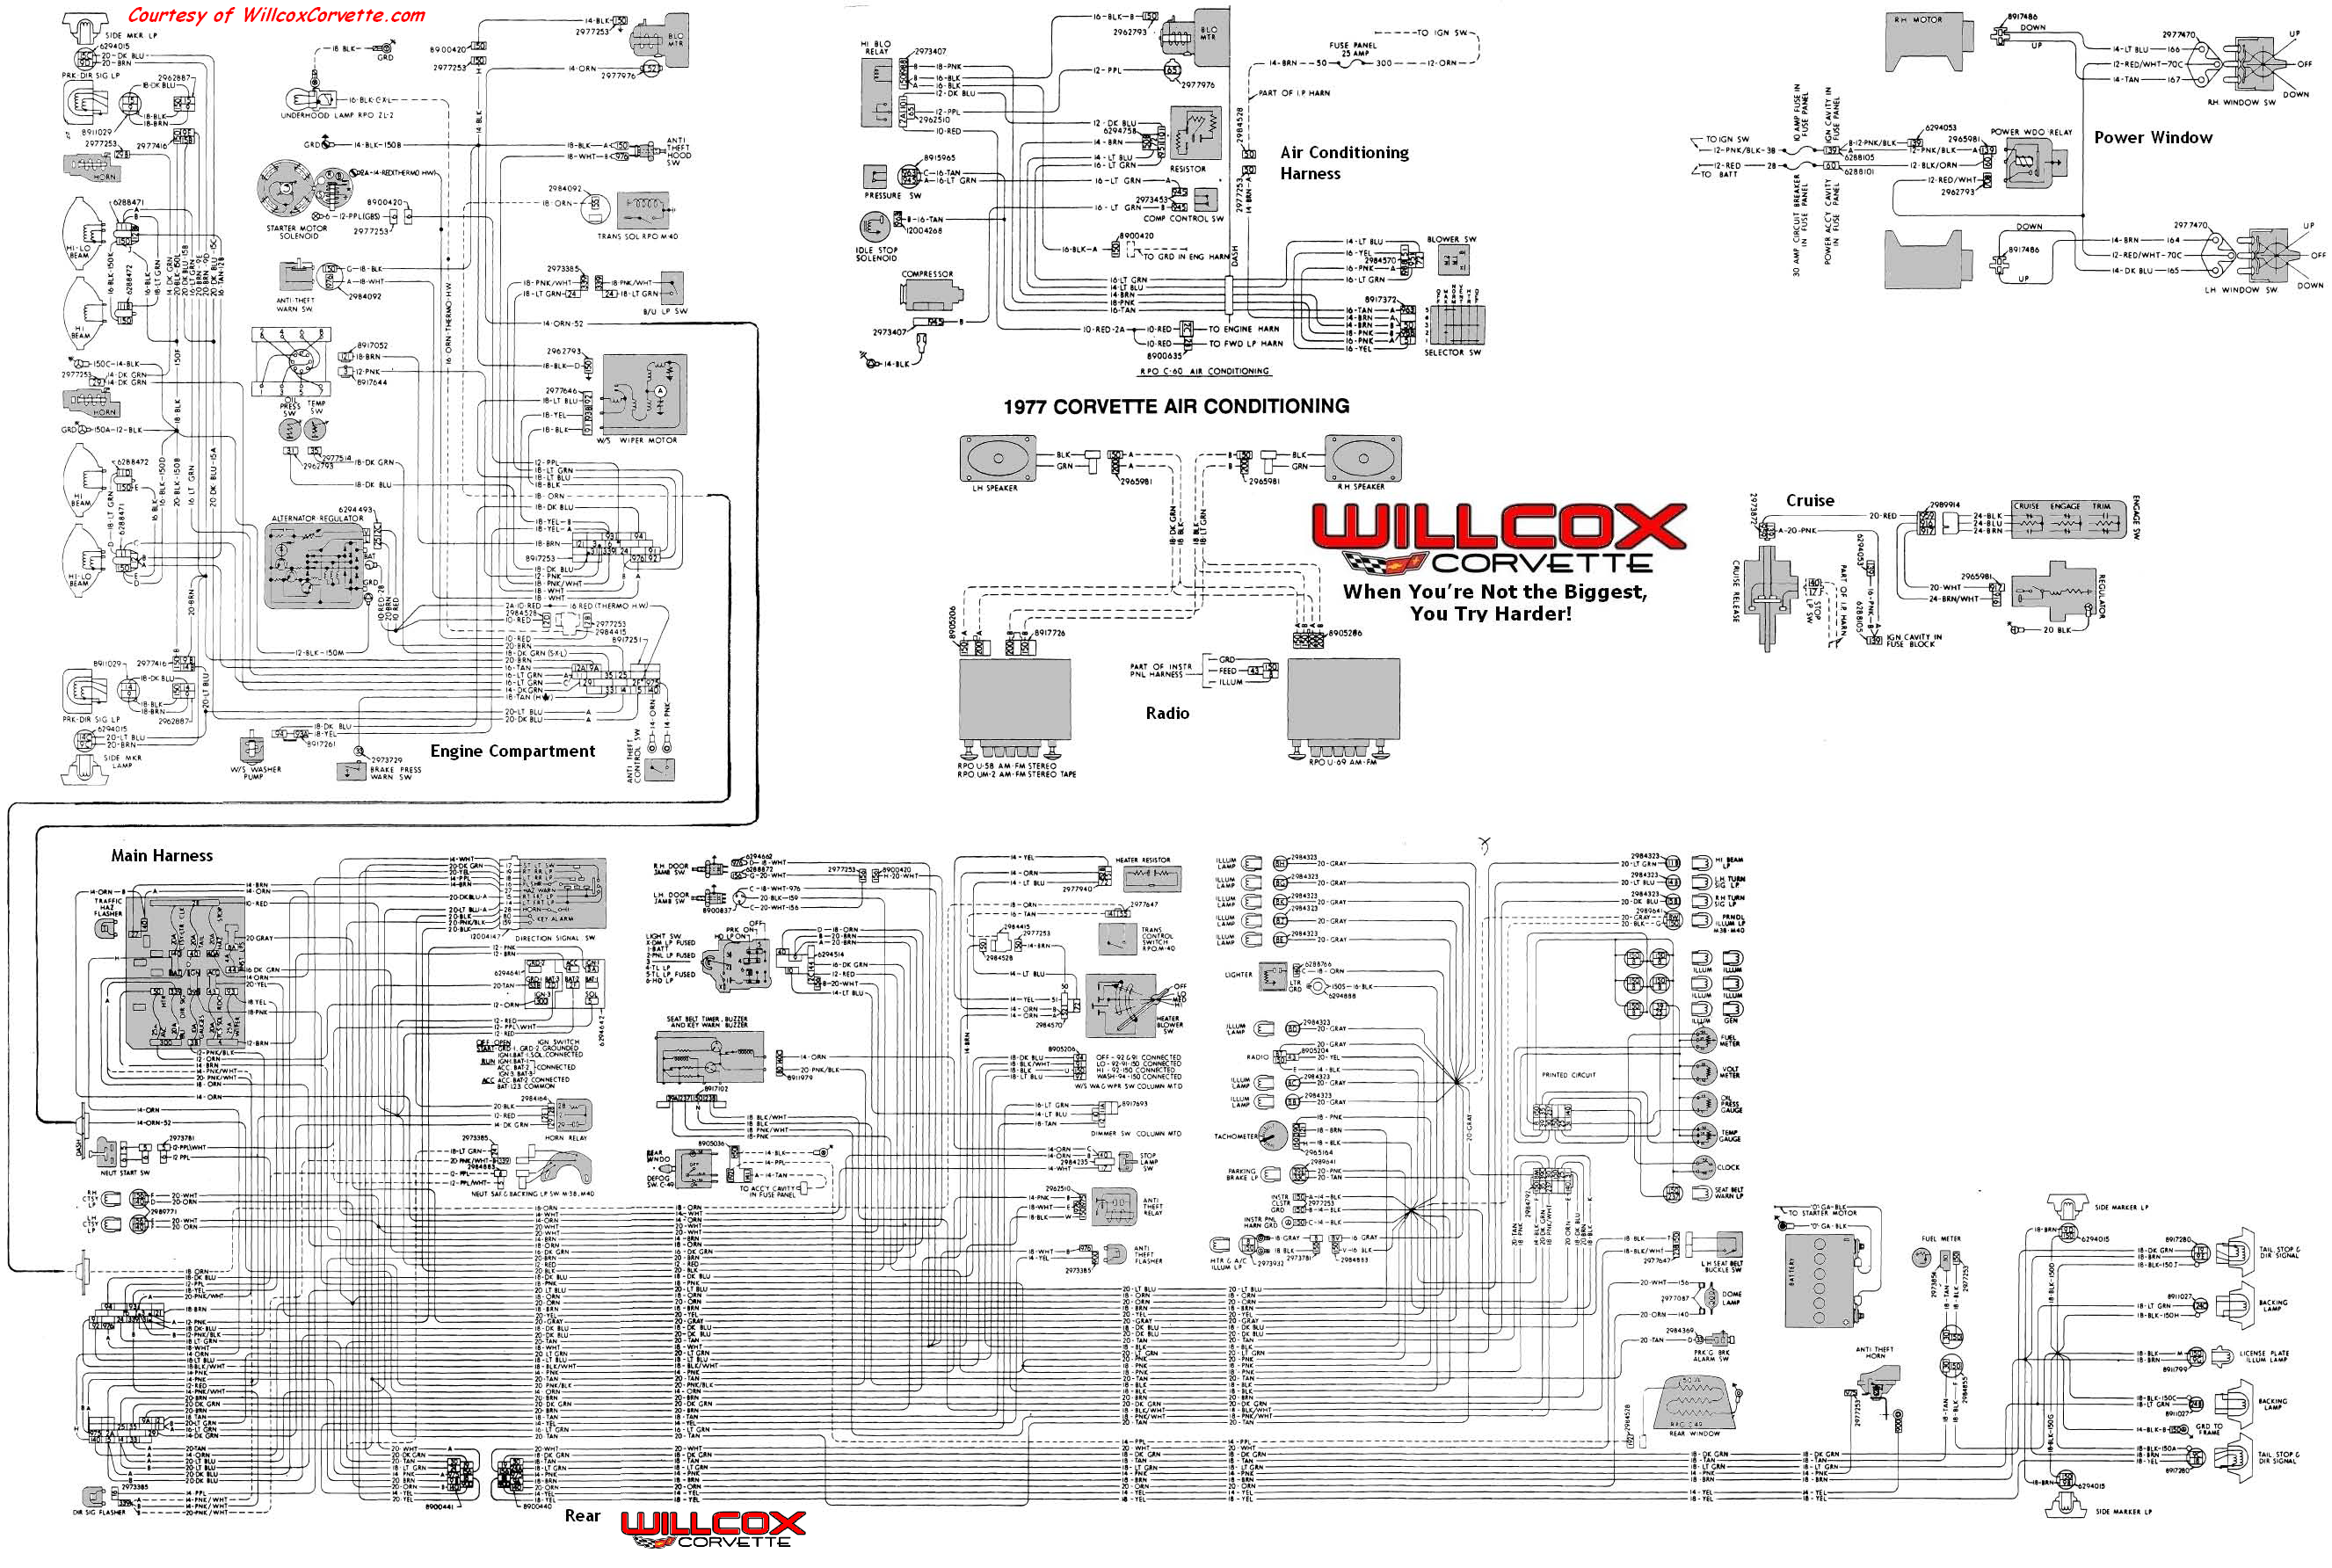 1977 corvette tracer wiring diagram tracer schematic willcox 77 corvette wire schematic tracer